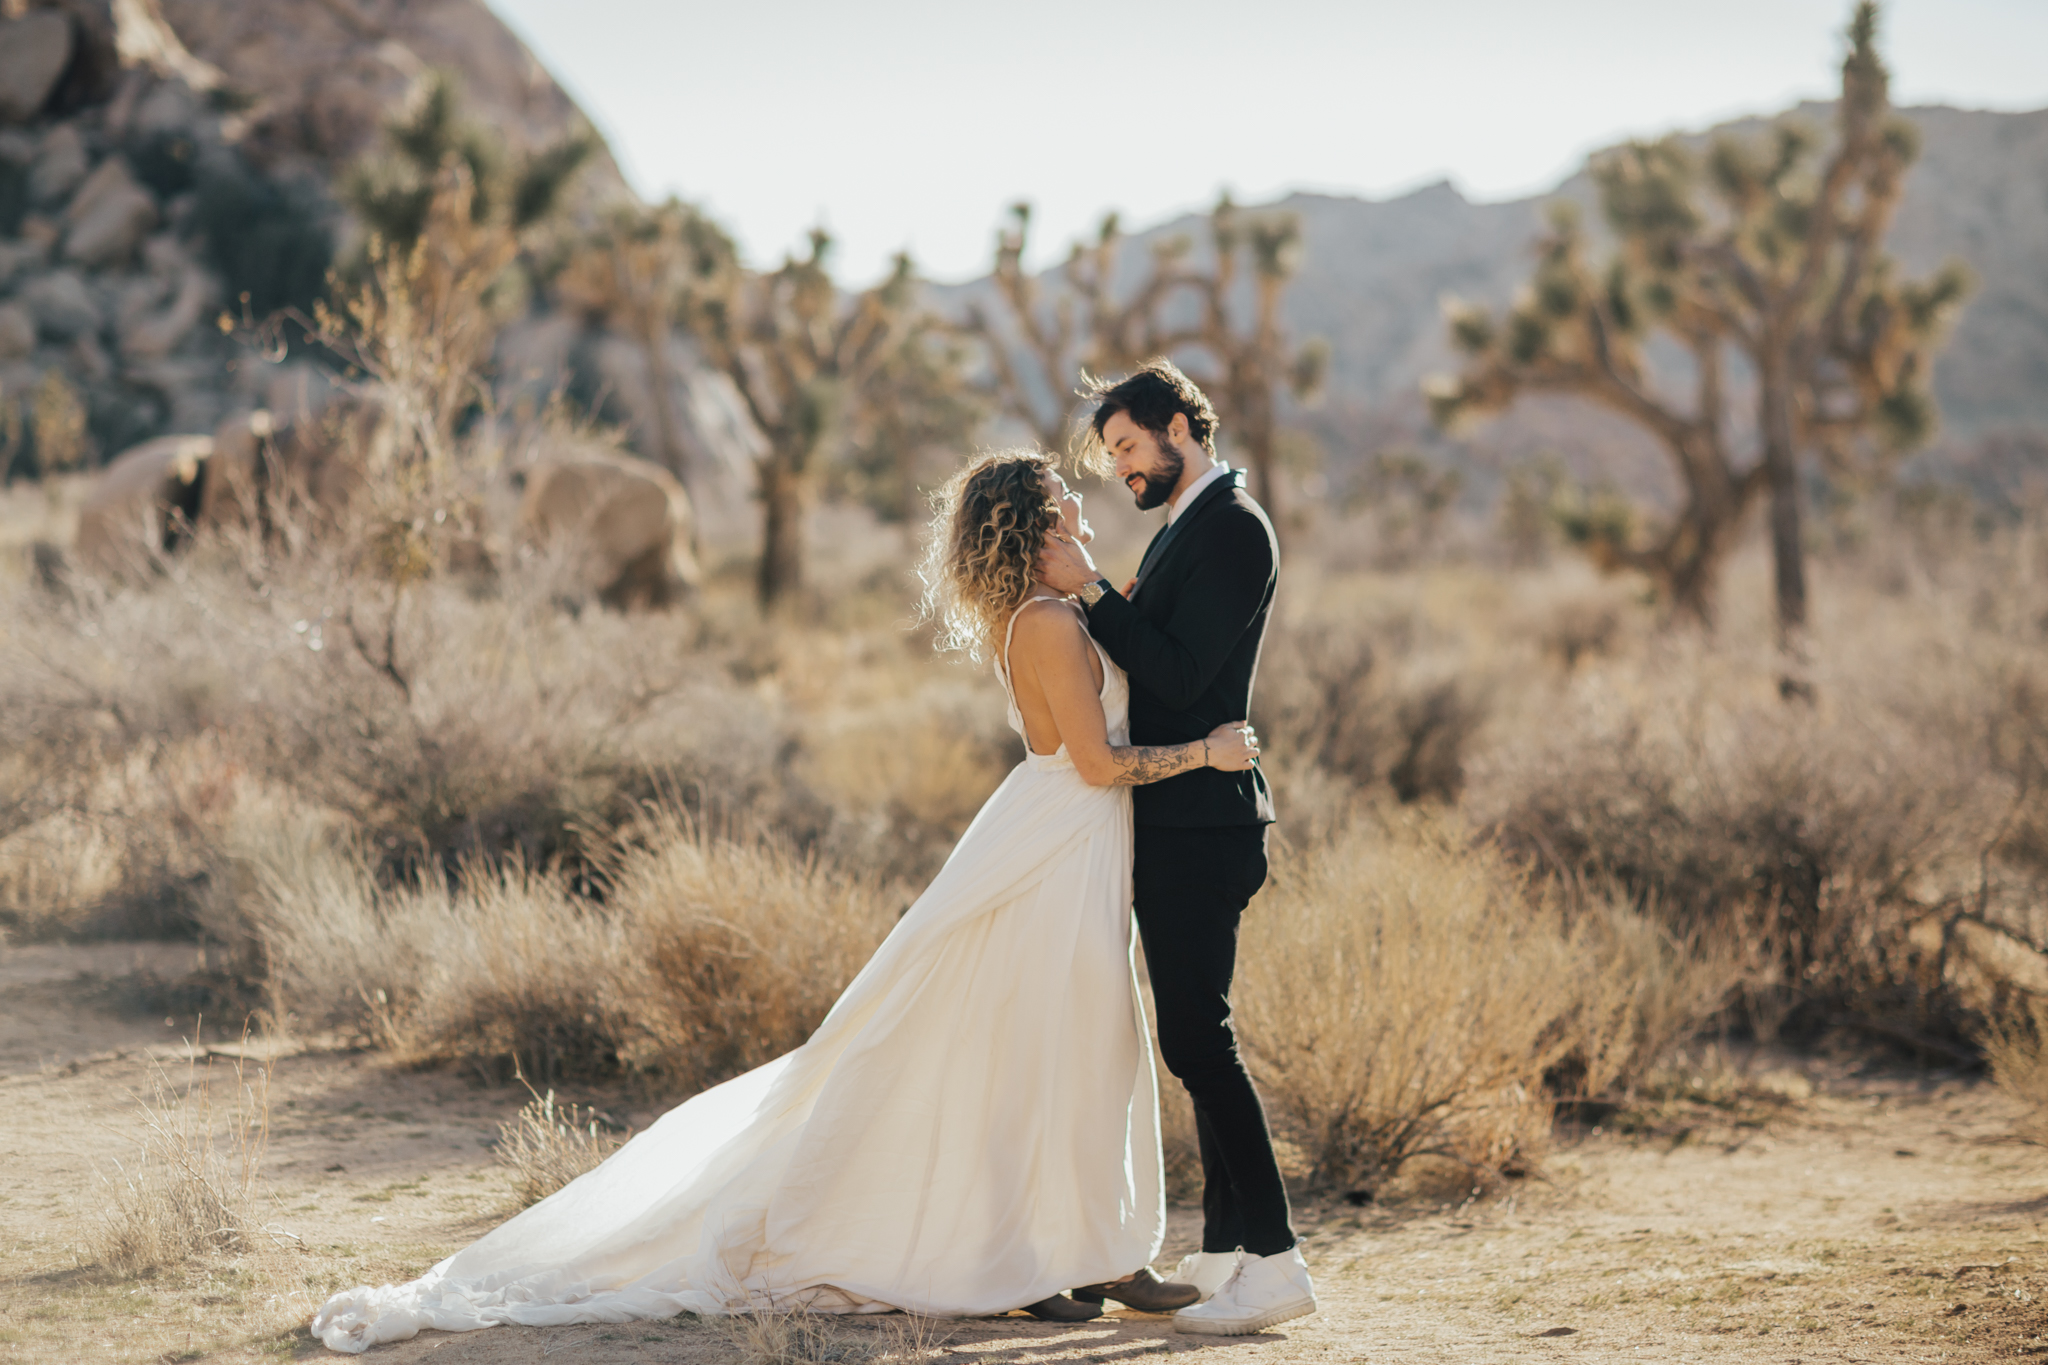 Intimate wedding photography desert